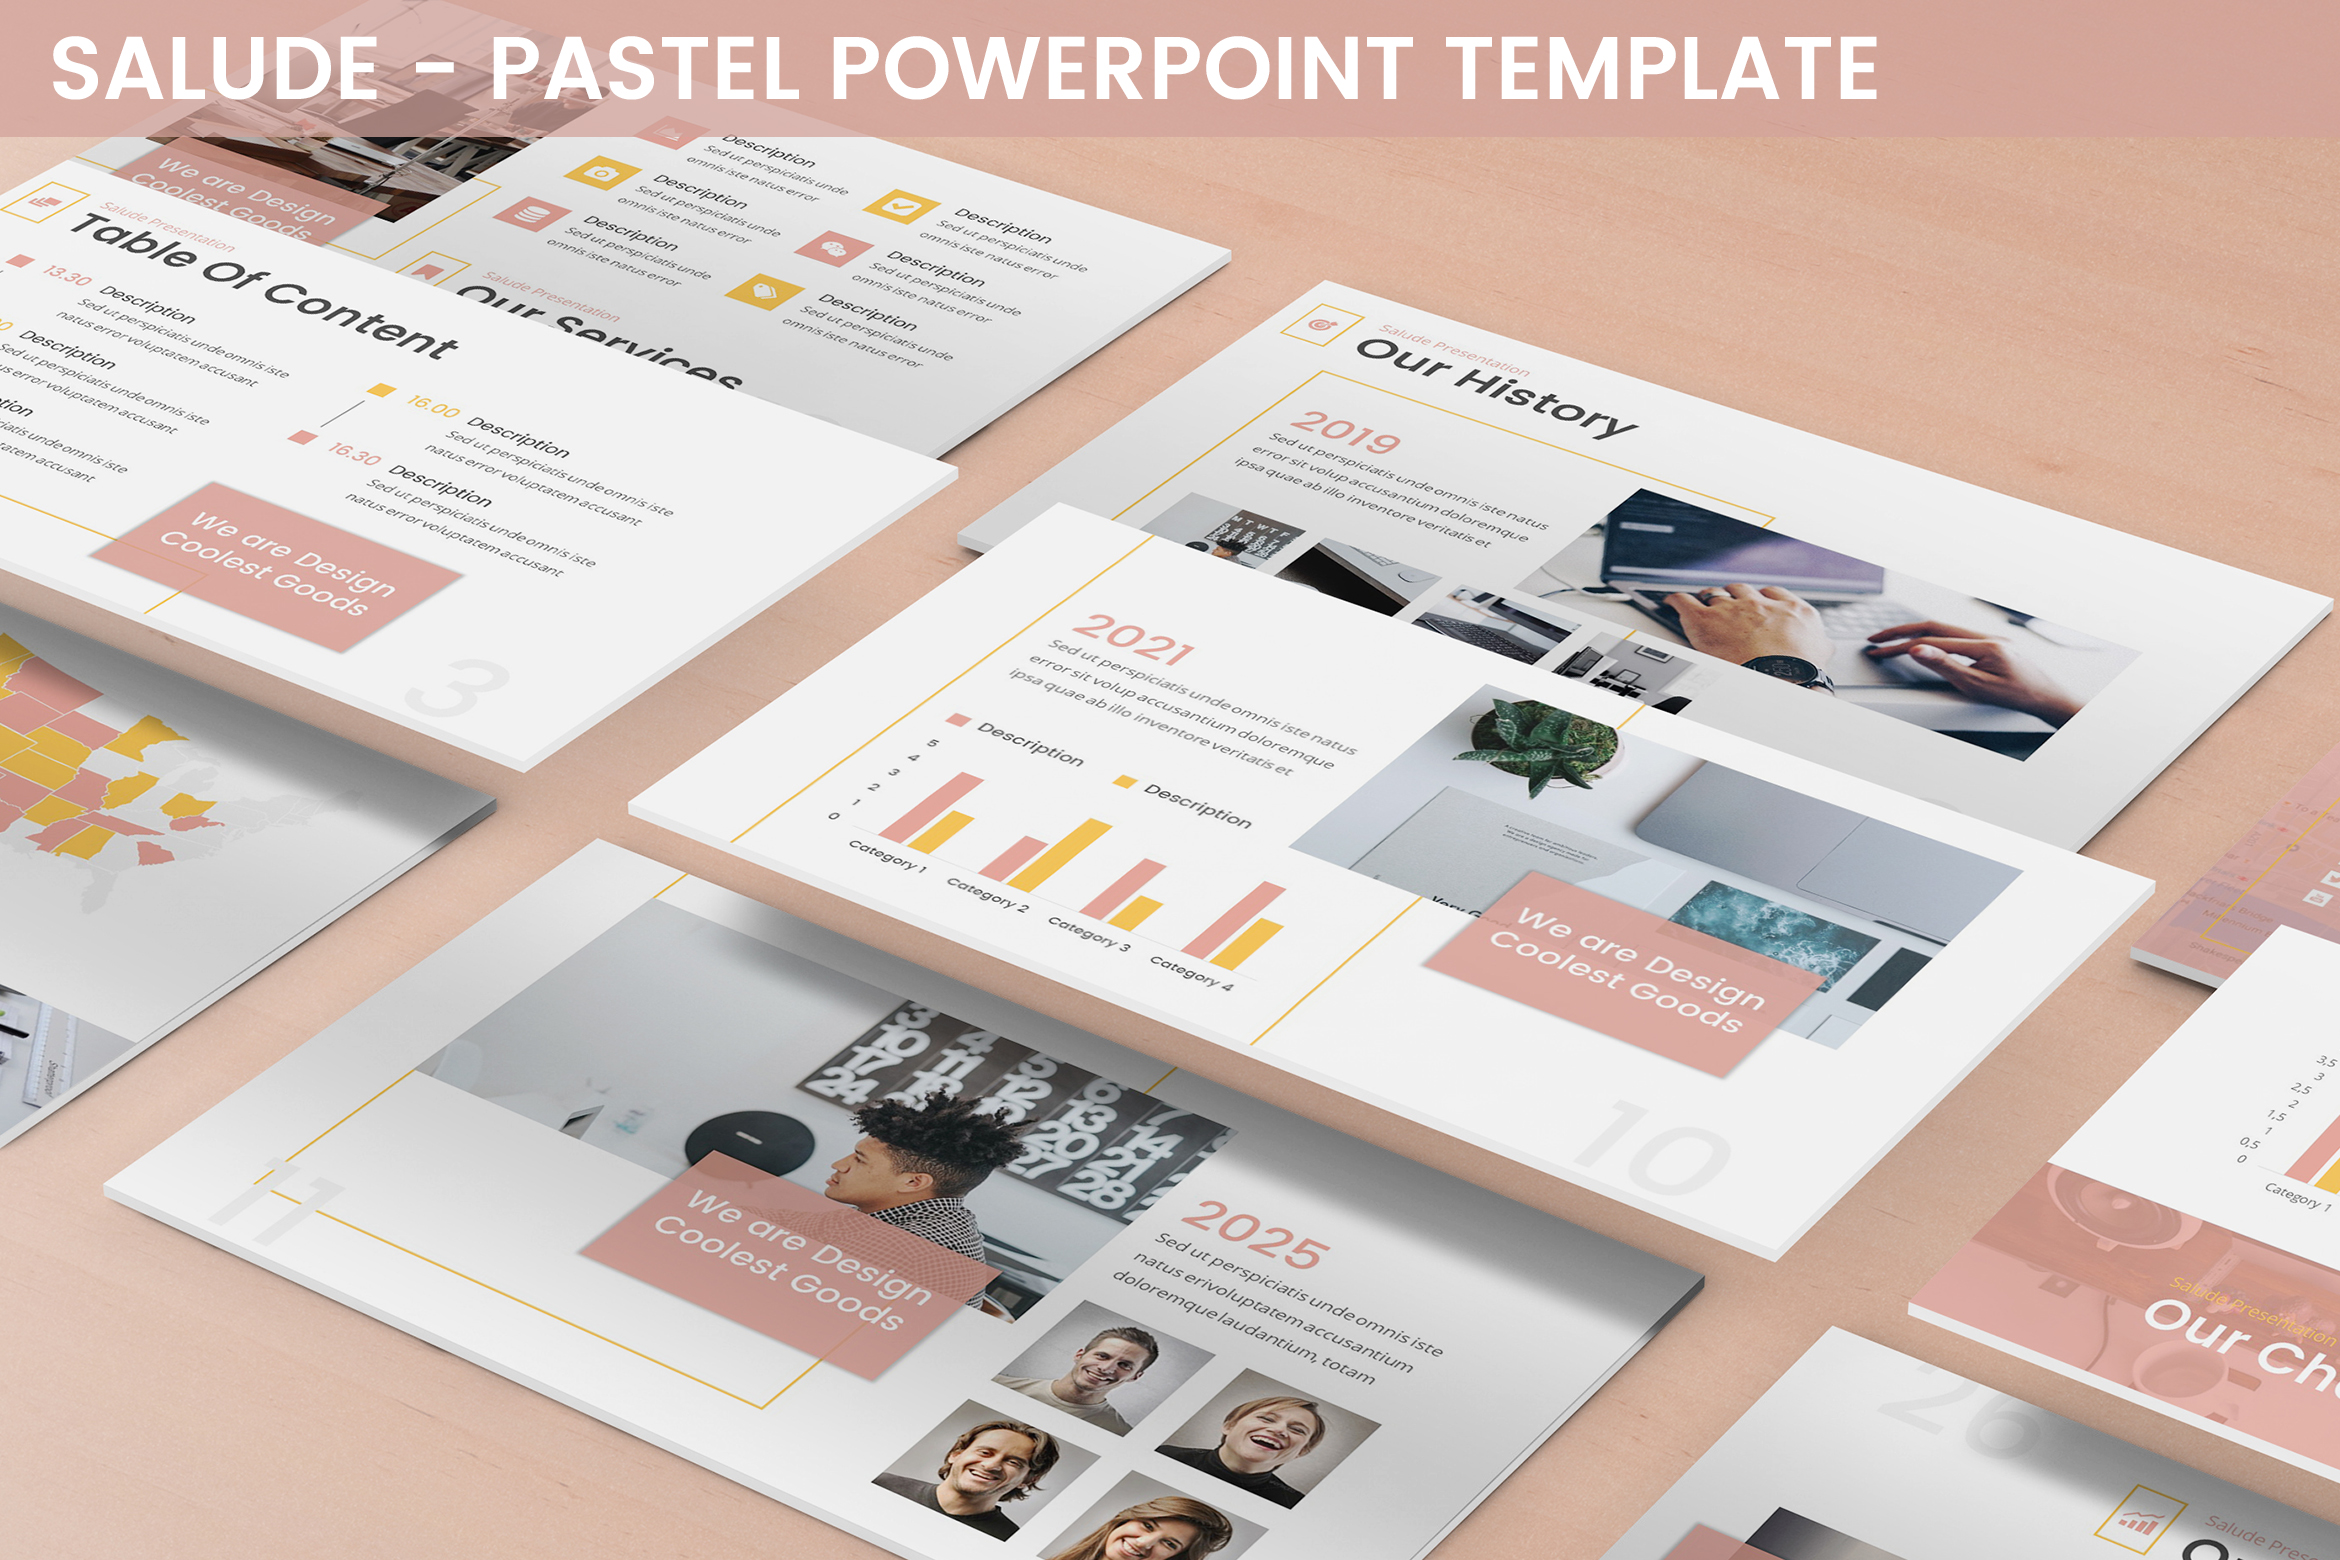 Salude - Pastel Powerpoint Template example image 1